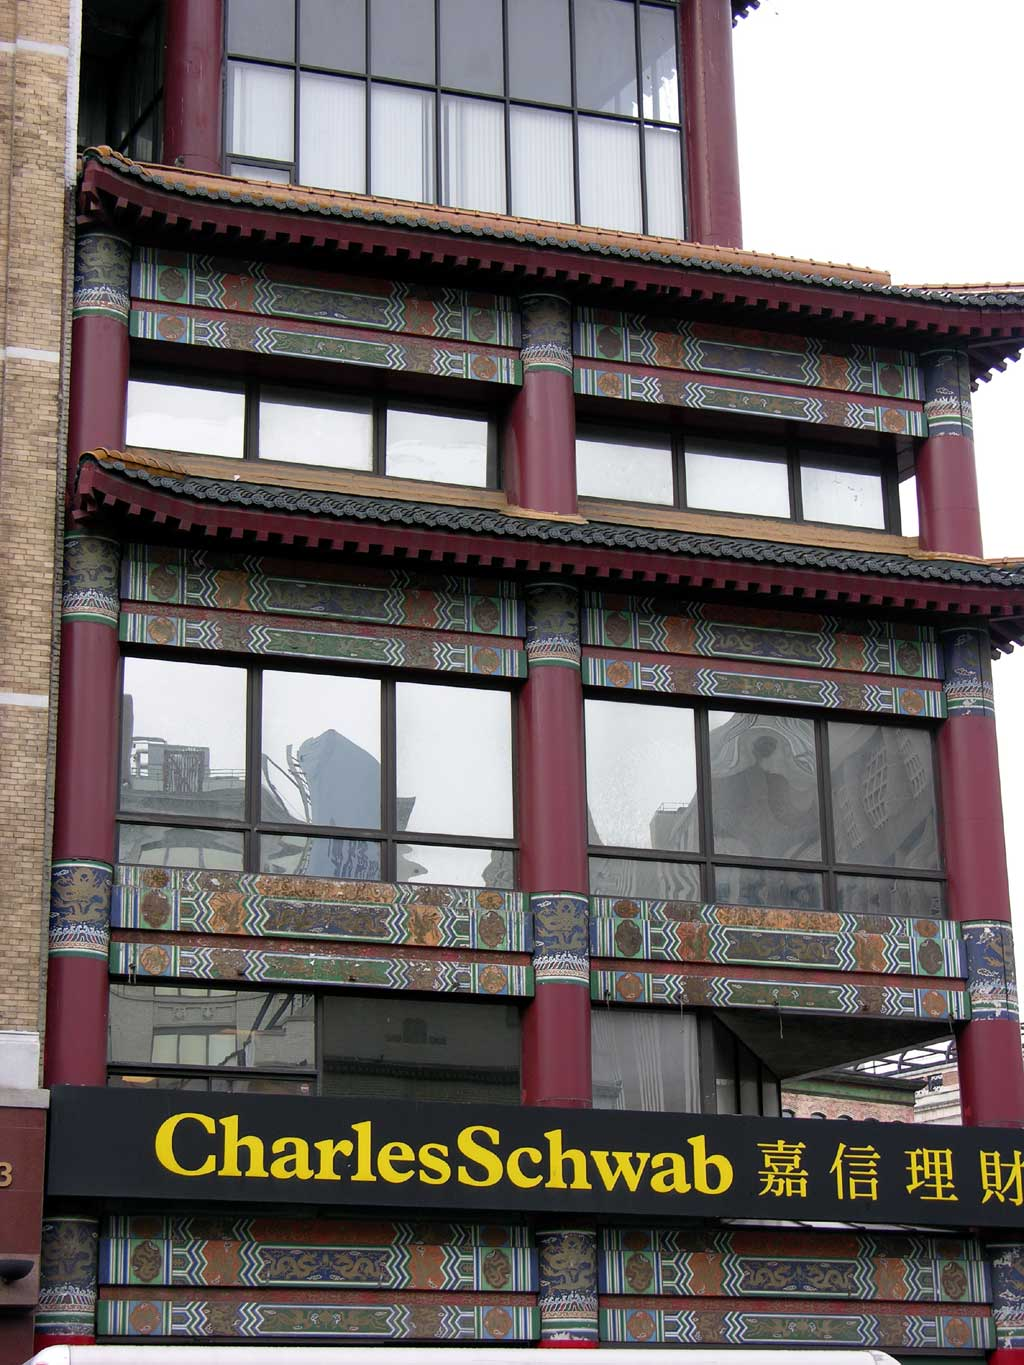 A financial building in Chinatown